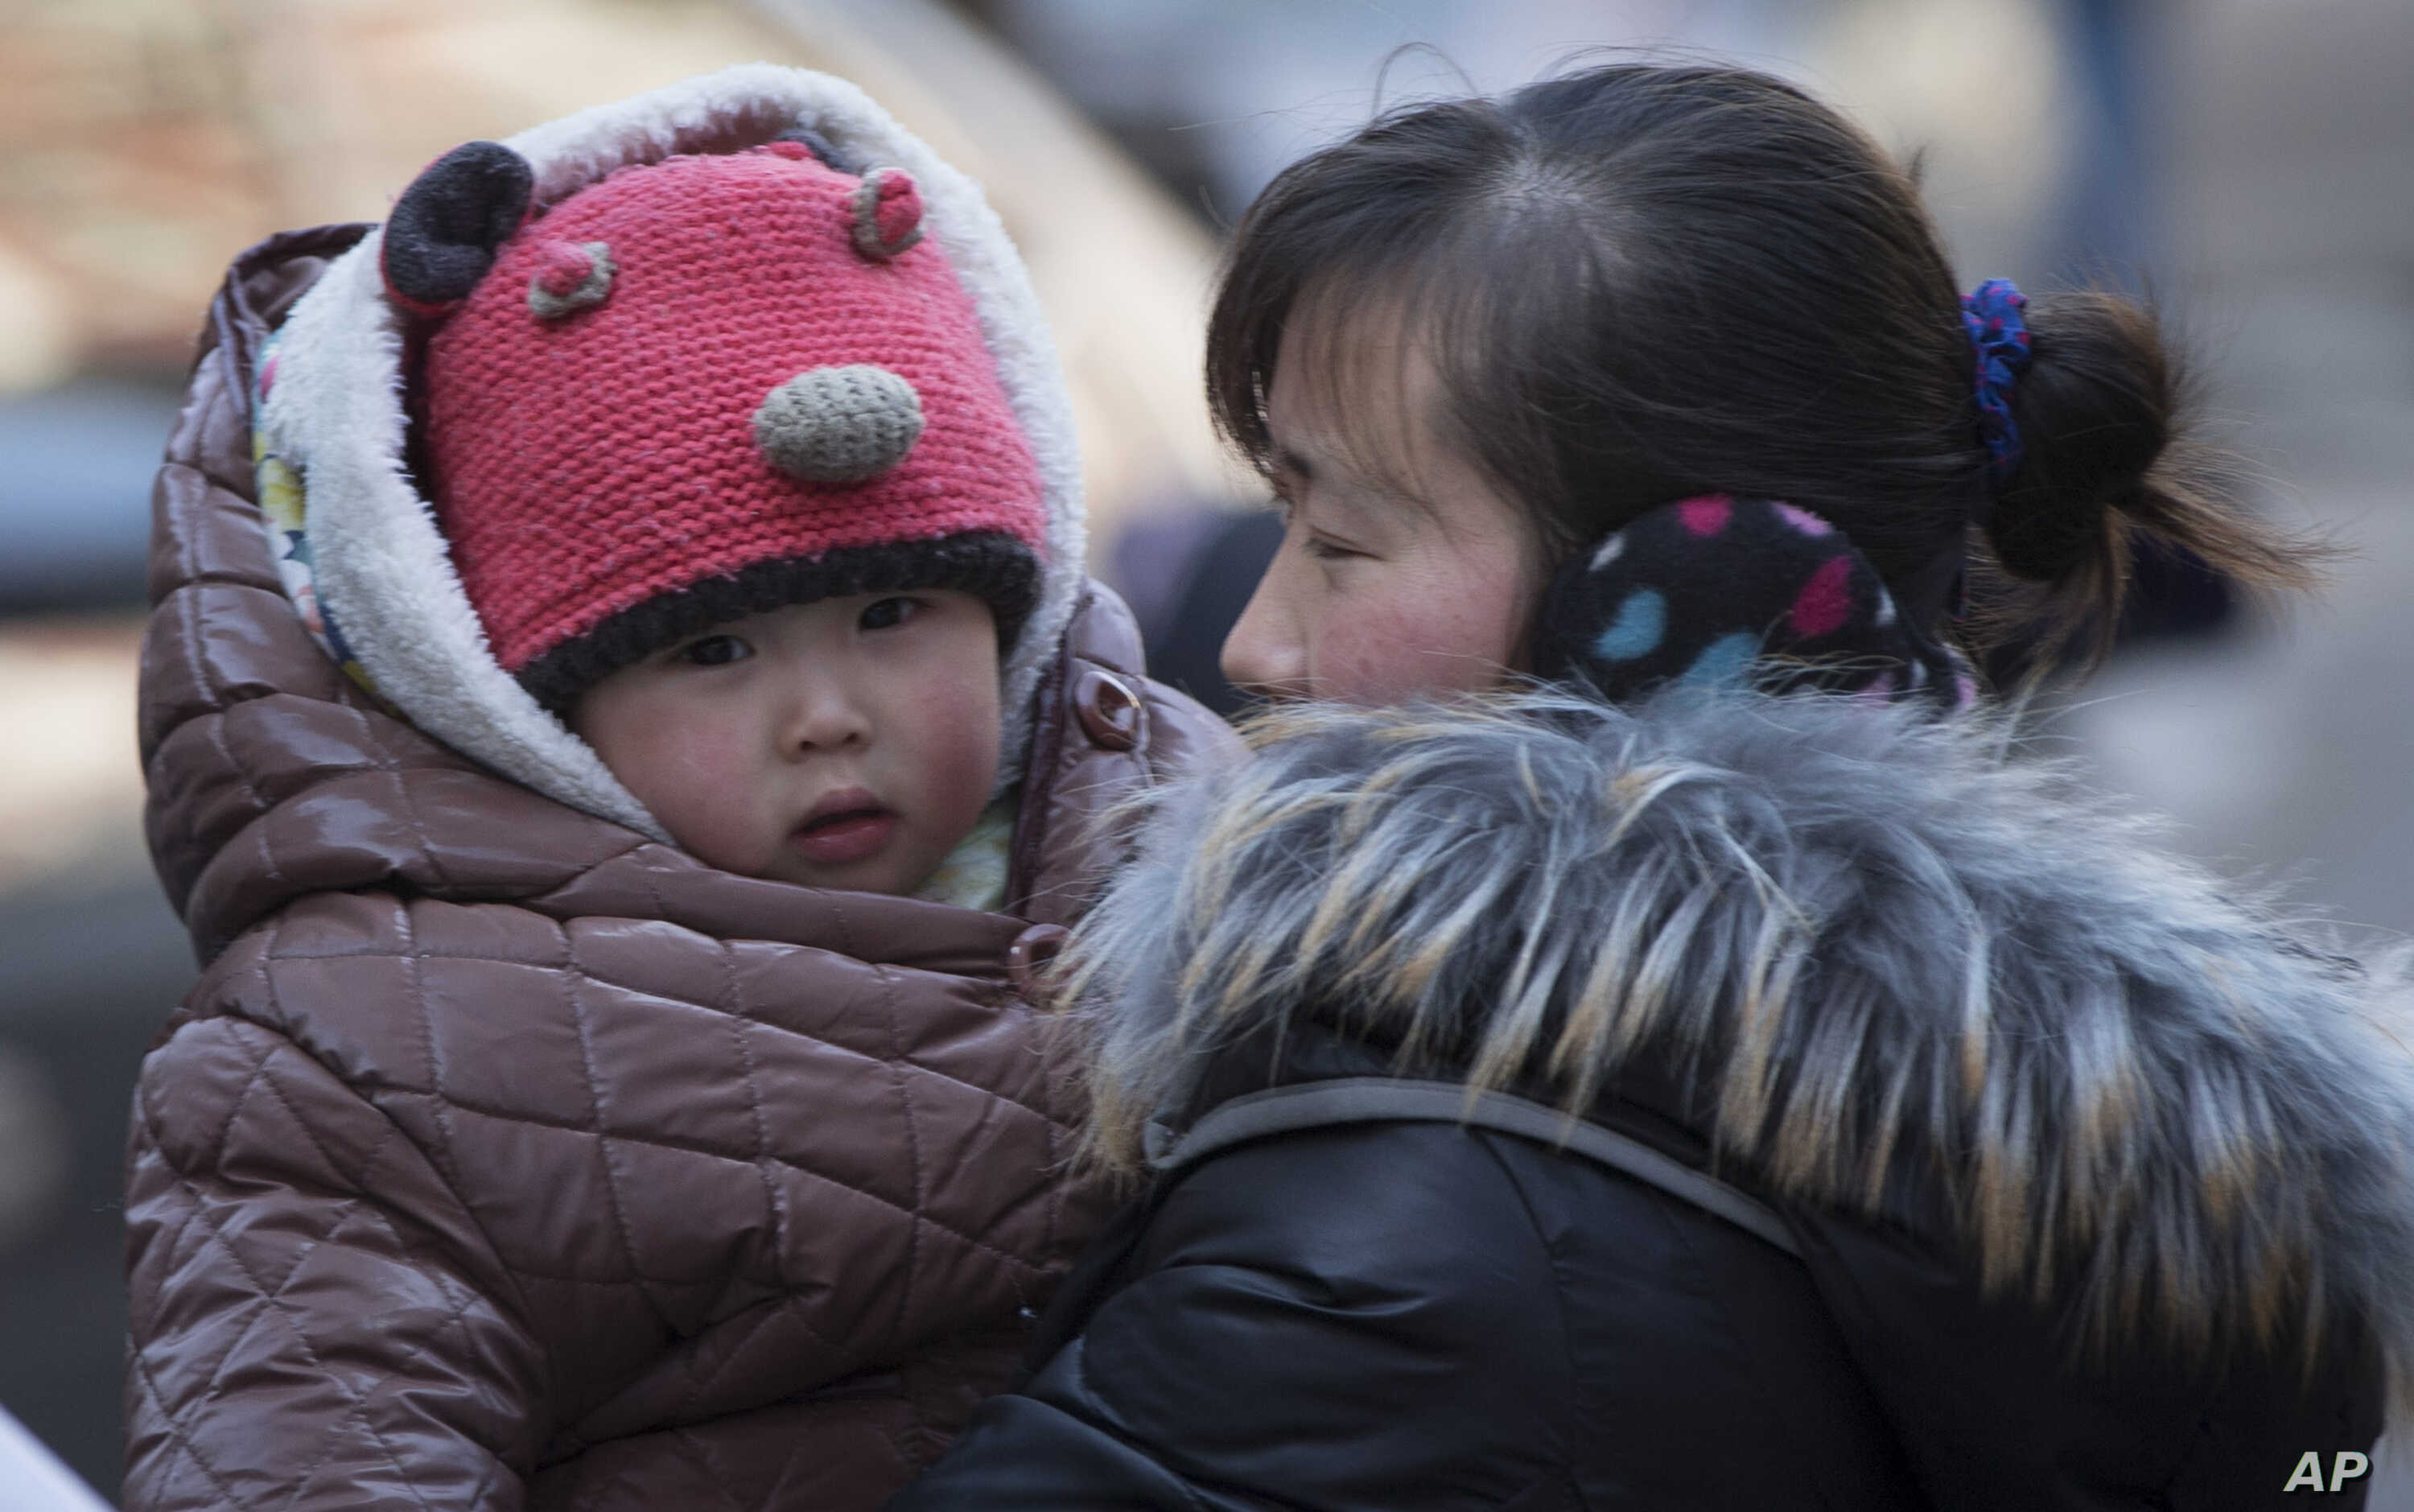 FILE - A Chinese woman cuddles her child in Beijing, China, March 6, 2014. China announced Thursday it was ending its long-standing one-child policy and will now allow all couples to have two children.